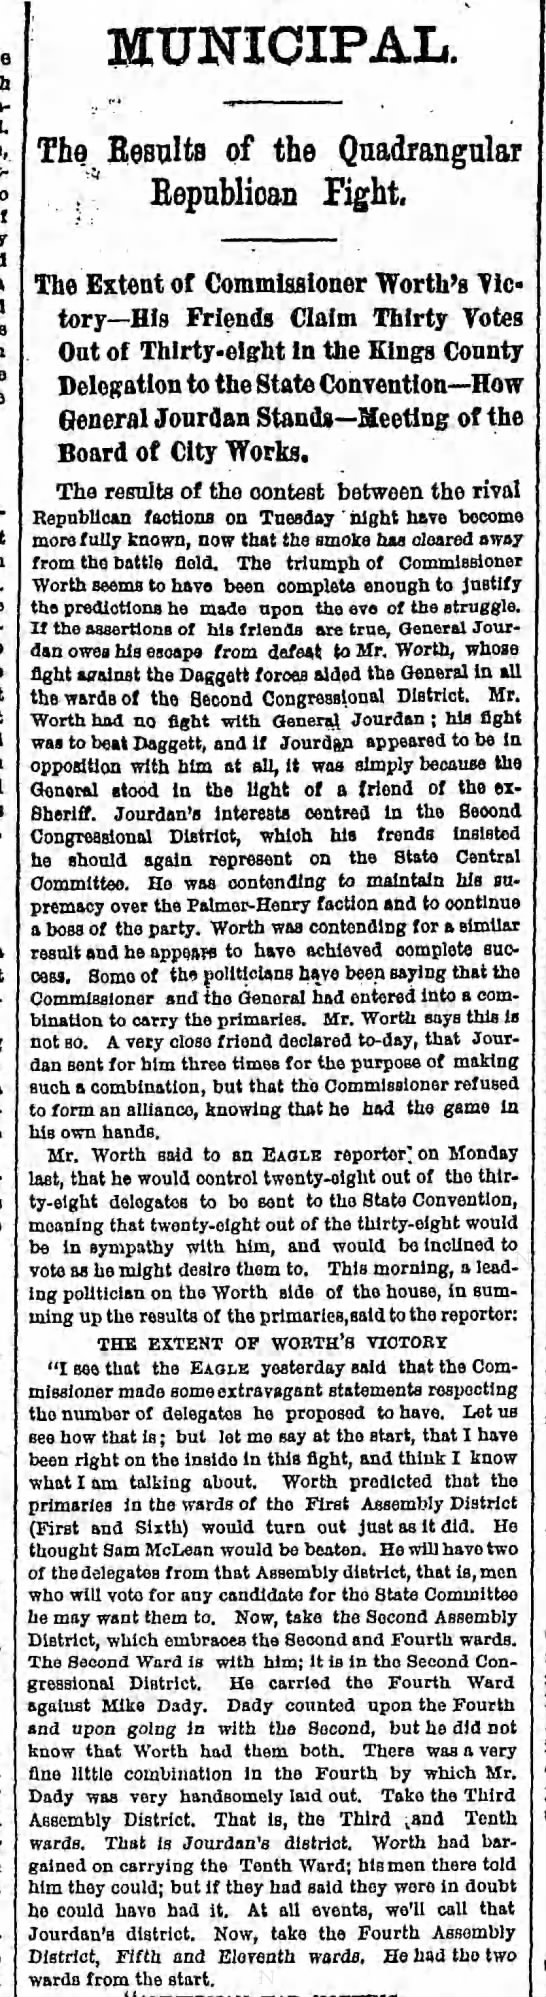 Thursday, August 28, 1879 - Page 4 - - MUNICIPAL. The Eesults of the Quadrangular...